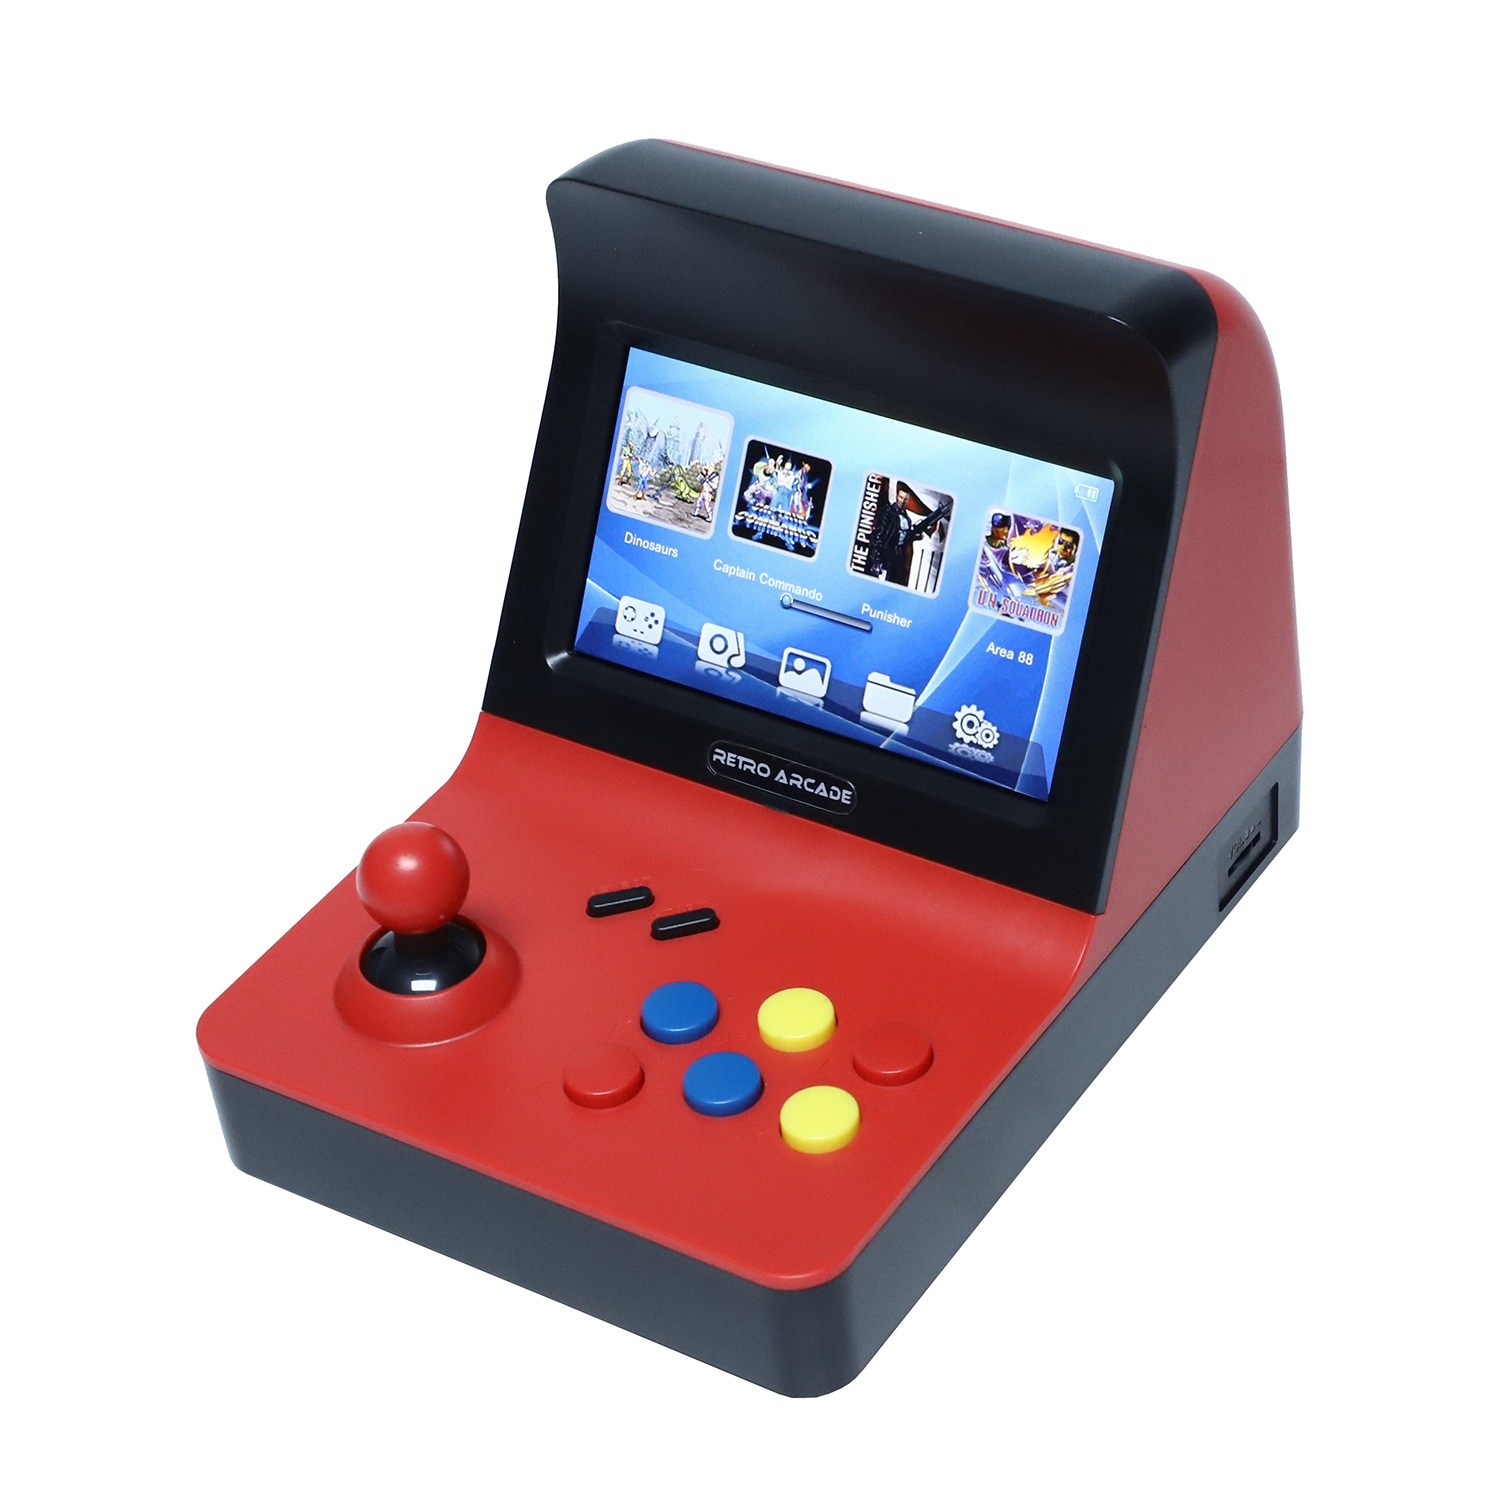 Powkiddy A8 Retro Arcade Console Game Console Gaming Machine Built-In 3000 Classic Games Gamepad Control AV Out Scree  4.3 InchPowkiddy A8 Retro Arcade Console Game Console Gaming Machine Built-In 3000 Classic Games Gamepad Control AV Out Scree  4.3 Inch